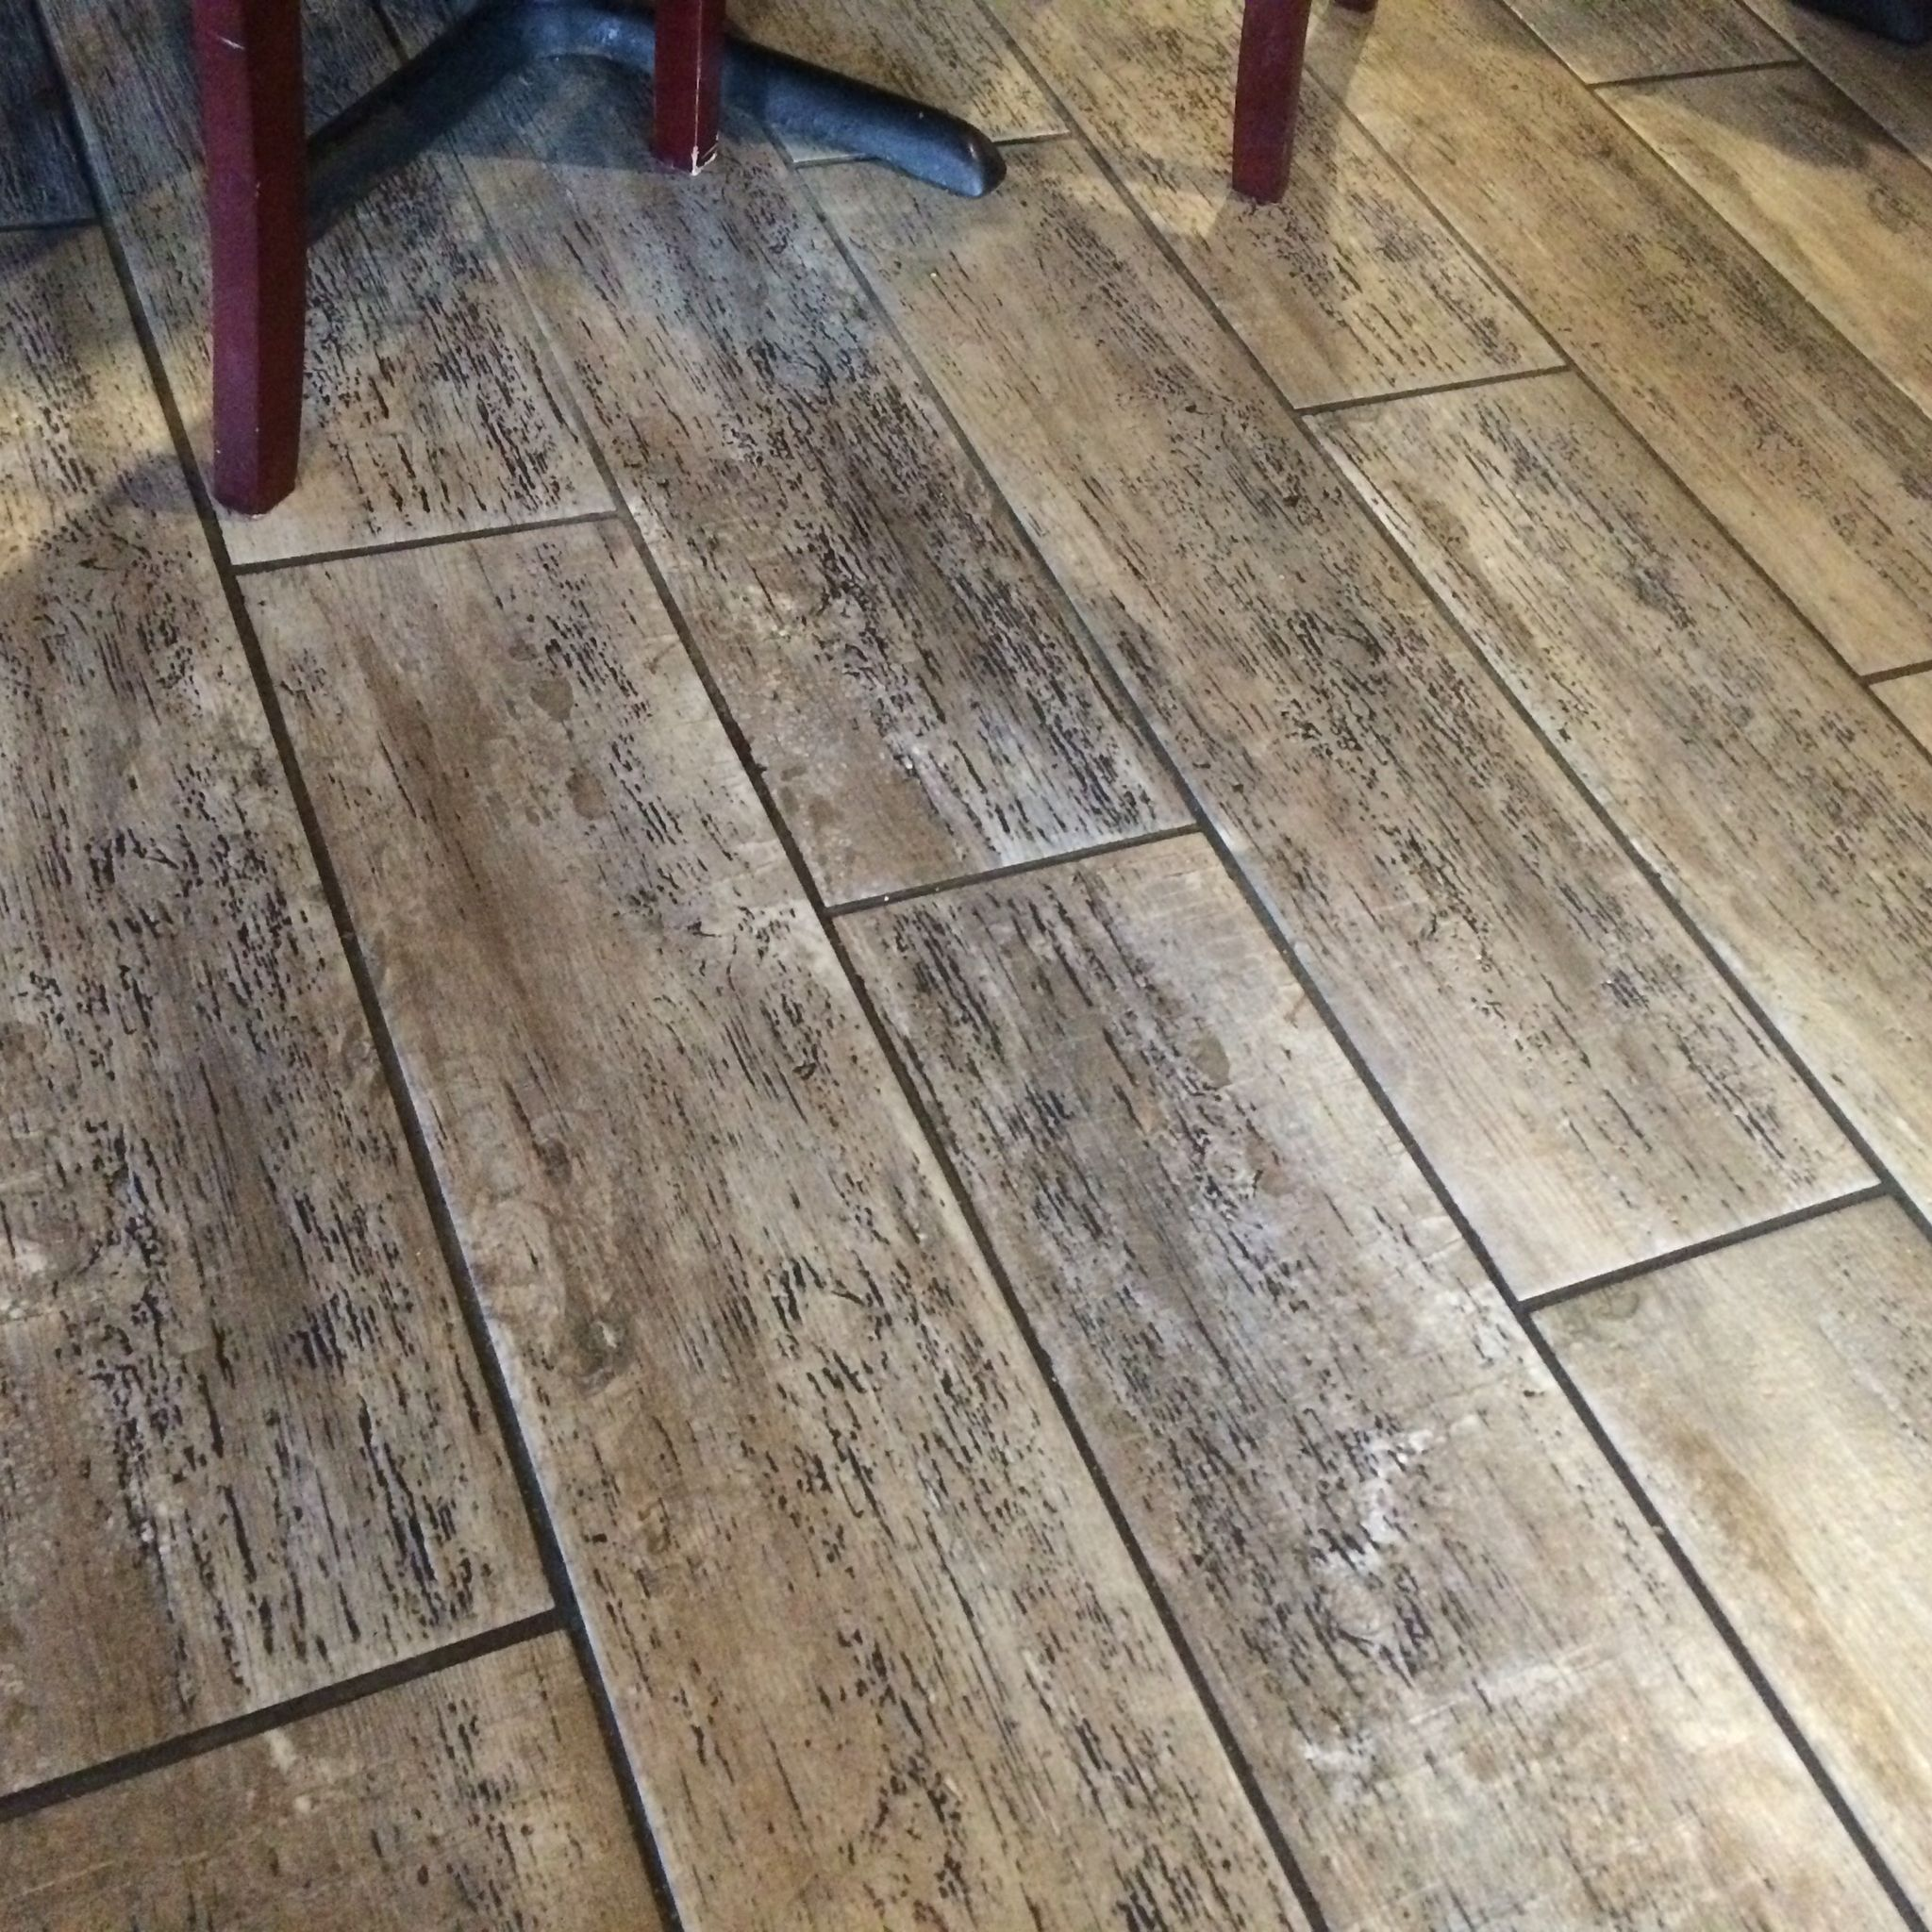 Cleaning Fake Wood Floors